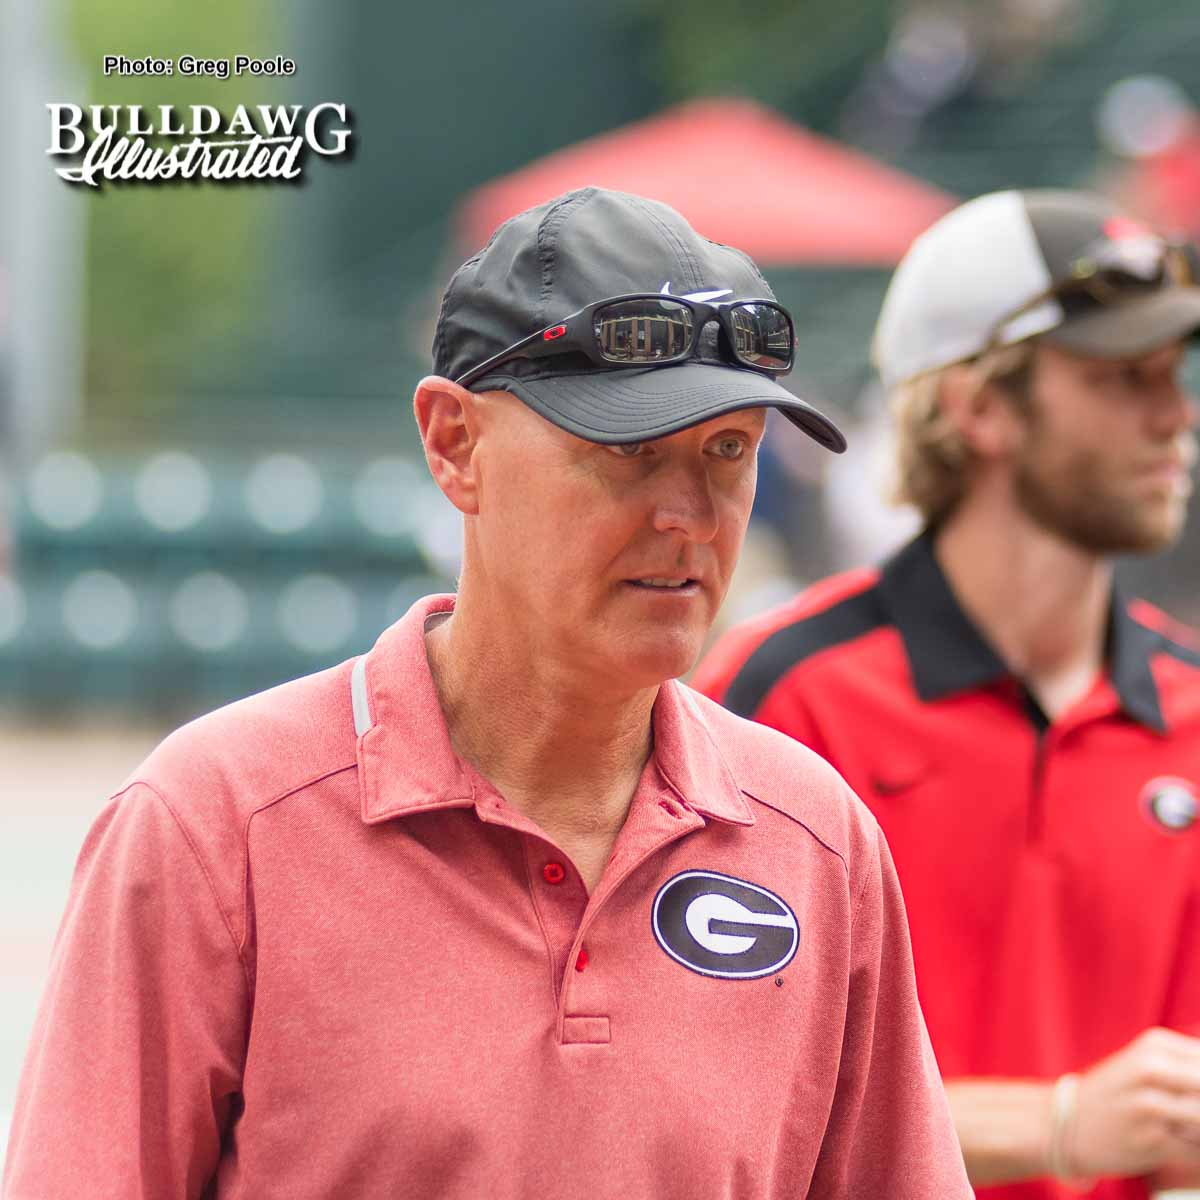 Jeff Wallace, Head coach UGA Women's Tennis - NCAA Regional - May 13, 2017